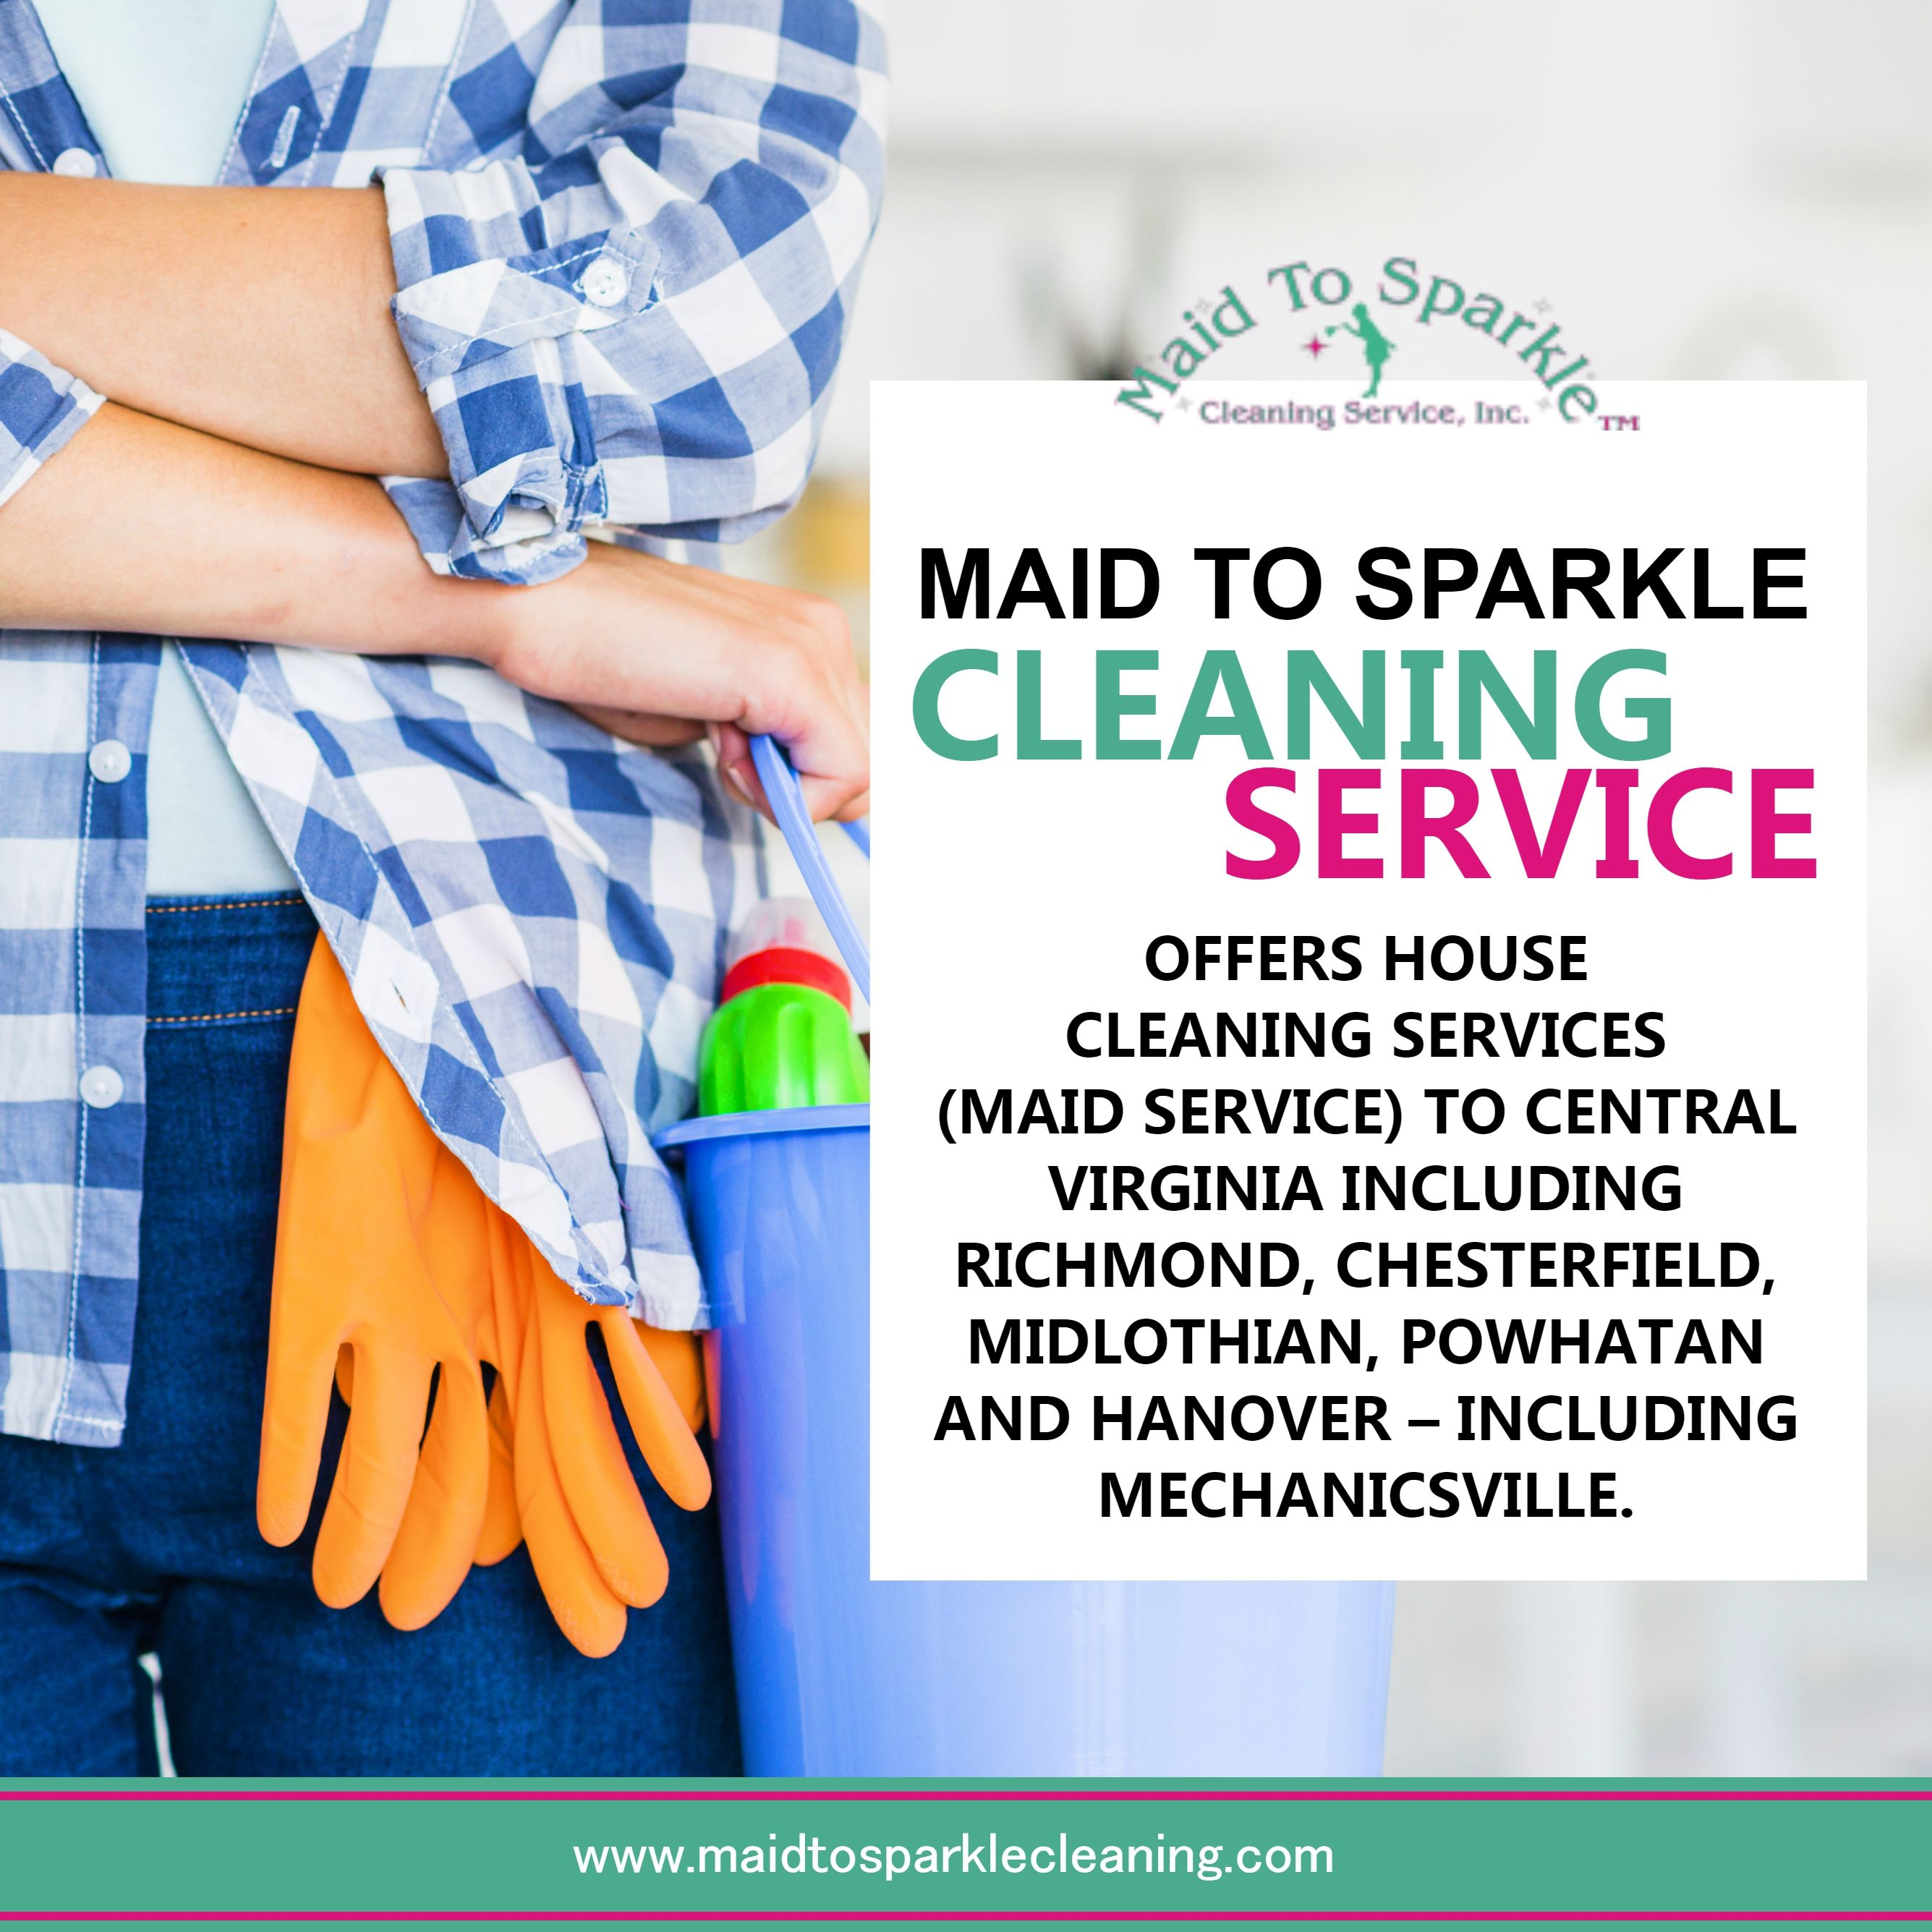 Maid To Sparkle Cleaning Service Offers House Cleaning Services Maid Service To Central Virginia Includi House Cleaning Services Clean House Cleaning Service